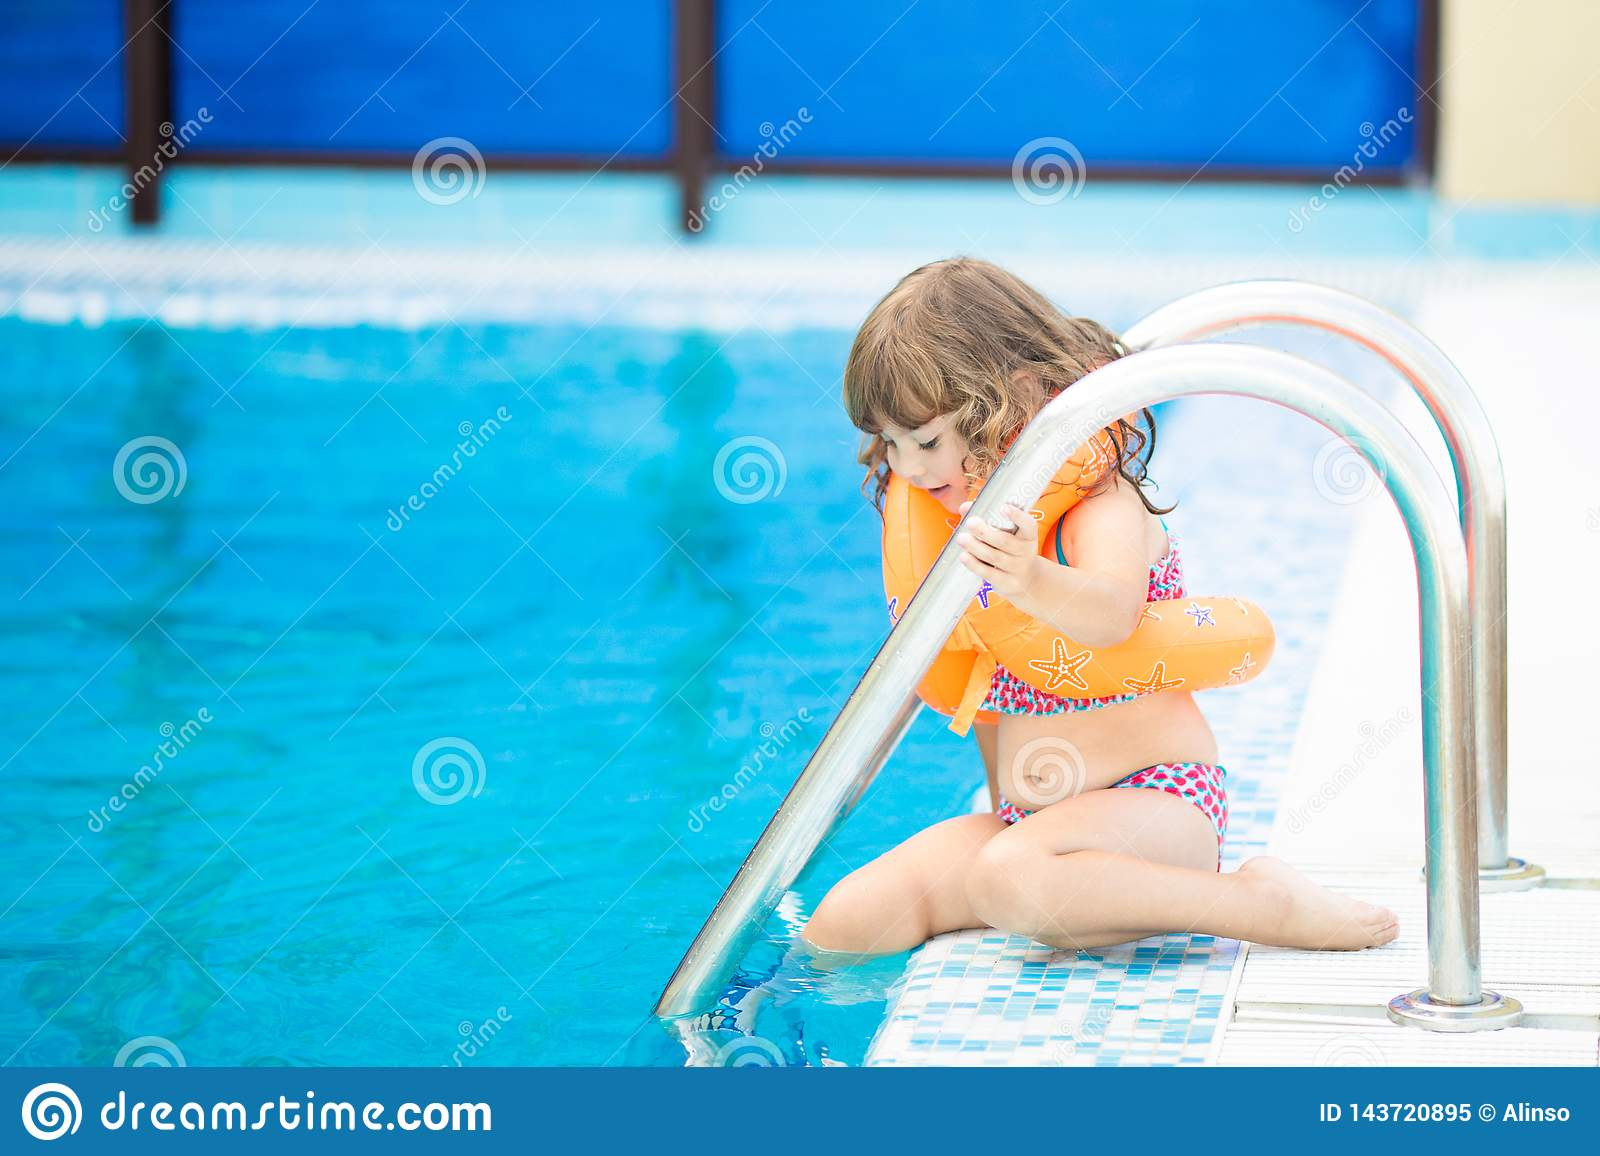 Adorable little girl with inflatable life vest having fun in the pool